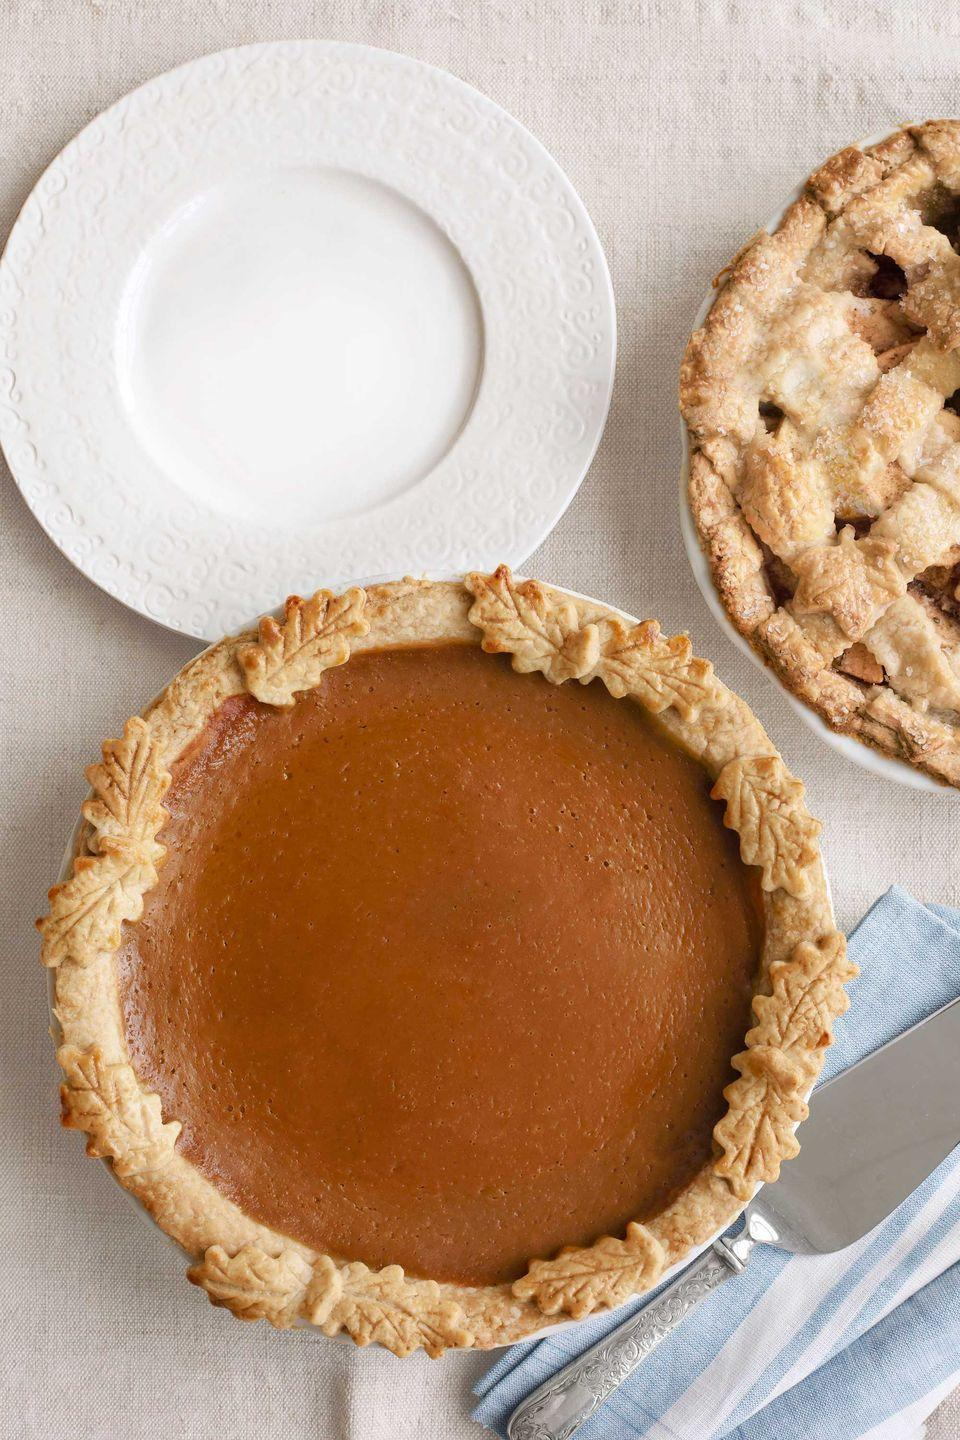 """<p>A traditional Southern dessert, this rich sweet potato pie turns fall produce into a spectacular holiday treat.<br></p><p><strong><a href=""""https://www.countryliving.com/food-drinks/recipes/a3900/sour-cream-sweet-potato-pie-recipe-clx1111/"""" rel=""""nofollow noopener"""" target=""""_blank"""" data-ylk=""""slk:Get the recipe"""" class=""""link rapid-noclick-resp"""">Get the recipe</a>.</strong></p><p><a class=""""link rapid-noclick-resp"""" href=""""https://www.lodgecastiron.com/product/seasoned-cast-iron-pie-pan?sku=BW9PIE"""" rel=""""nofollow noopener"""" target=""""_blank"""" data-ylk=""""slk:SHOP CAST IRON PIE PANS"""">SHOP CAST IRON PIE PANS</a></p>"""